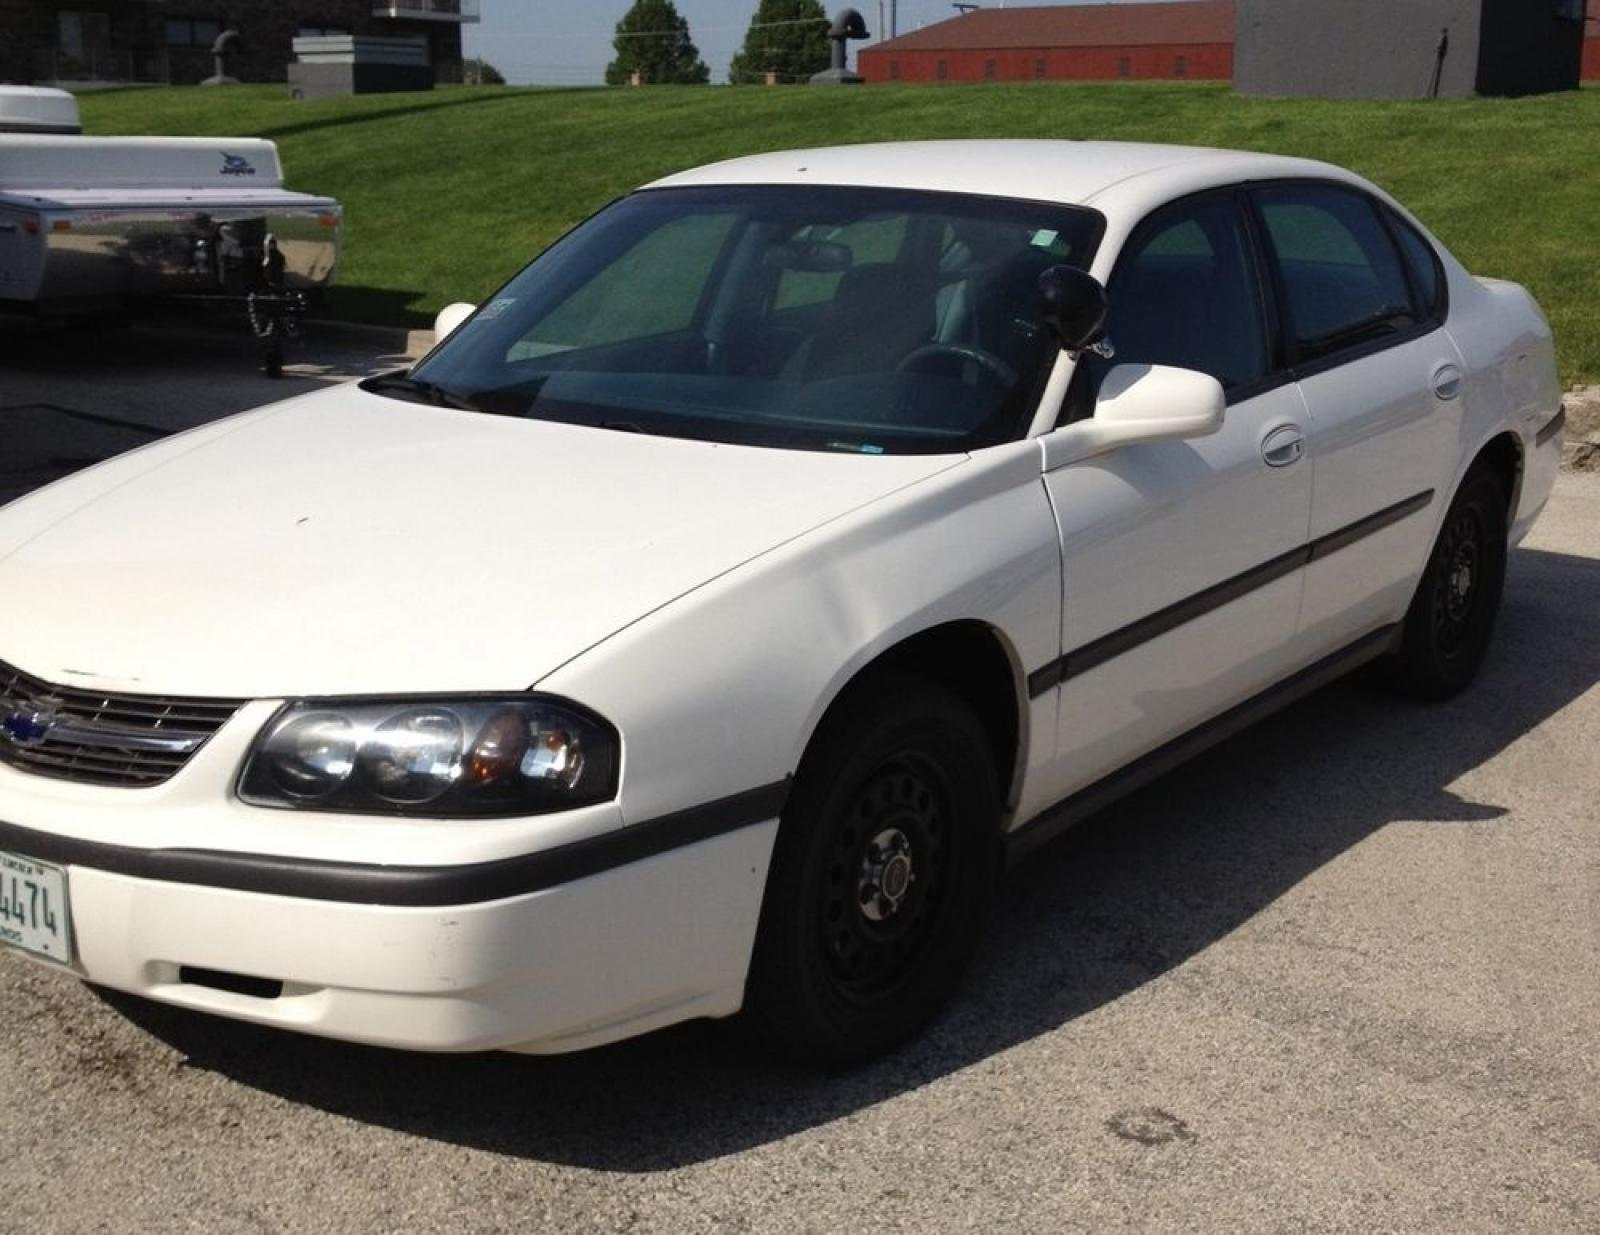 2004 chevrolet impala information and photos zombiedrive. Cars Review. Best American Auto & Cars Review